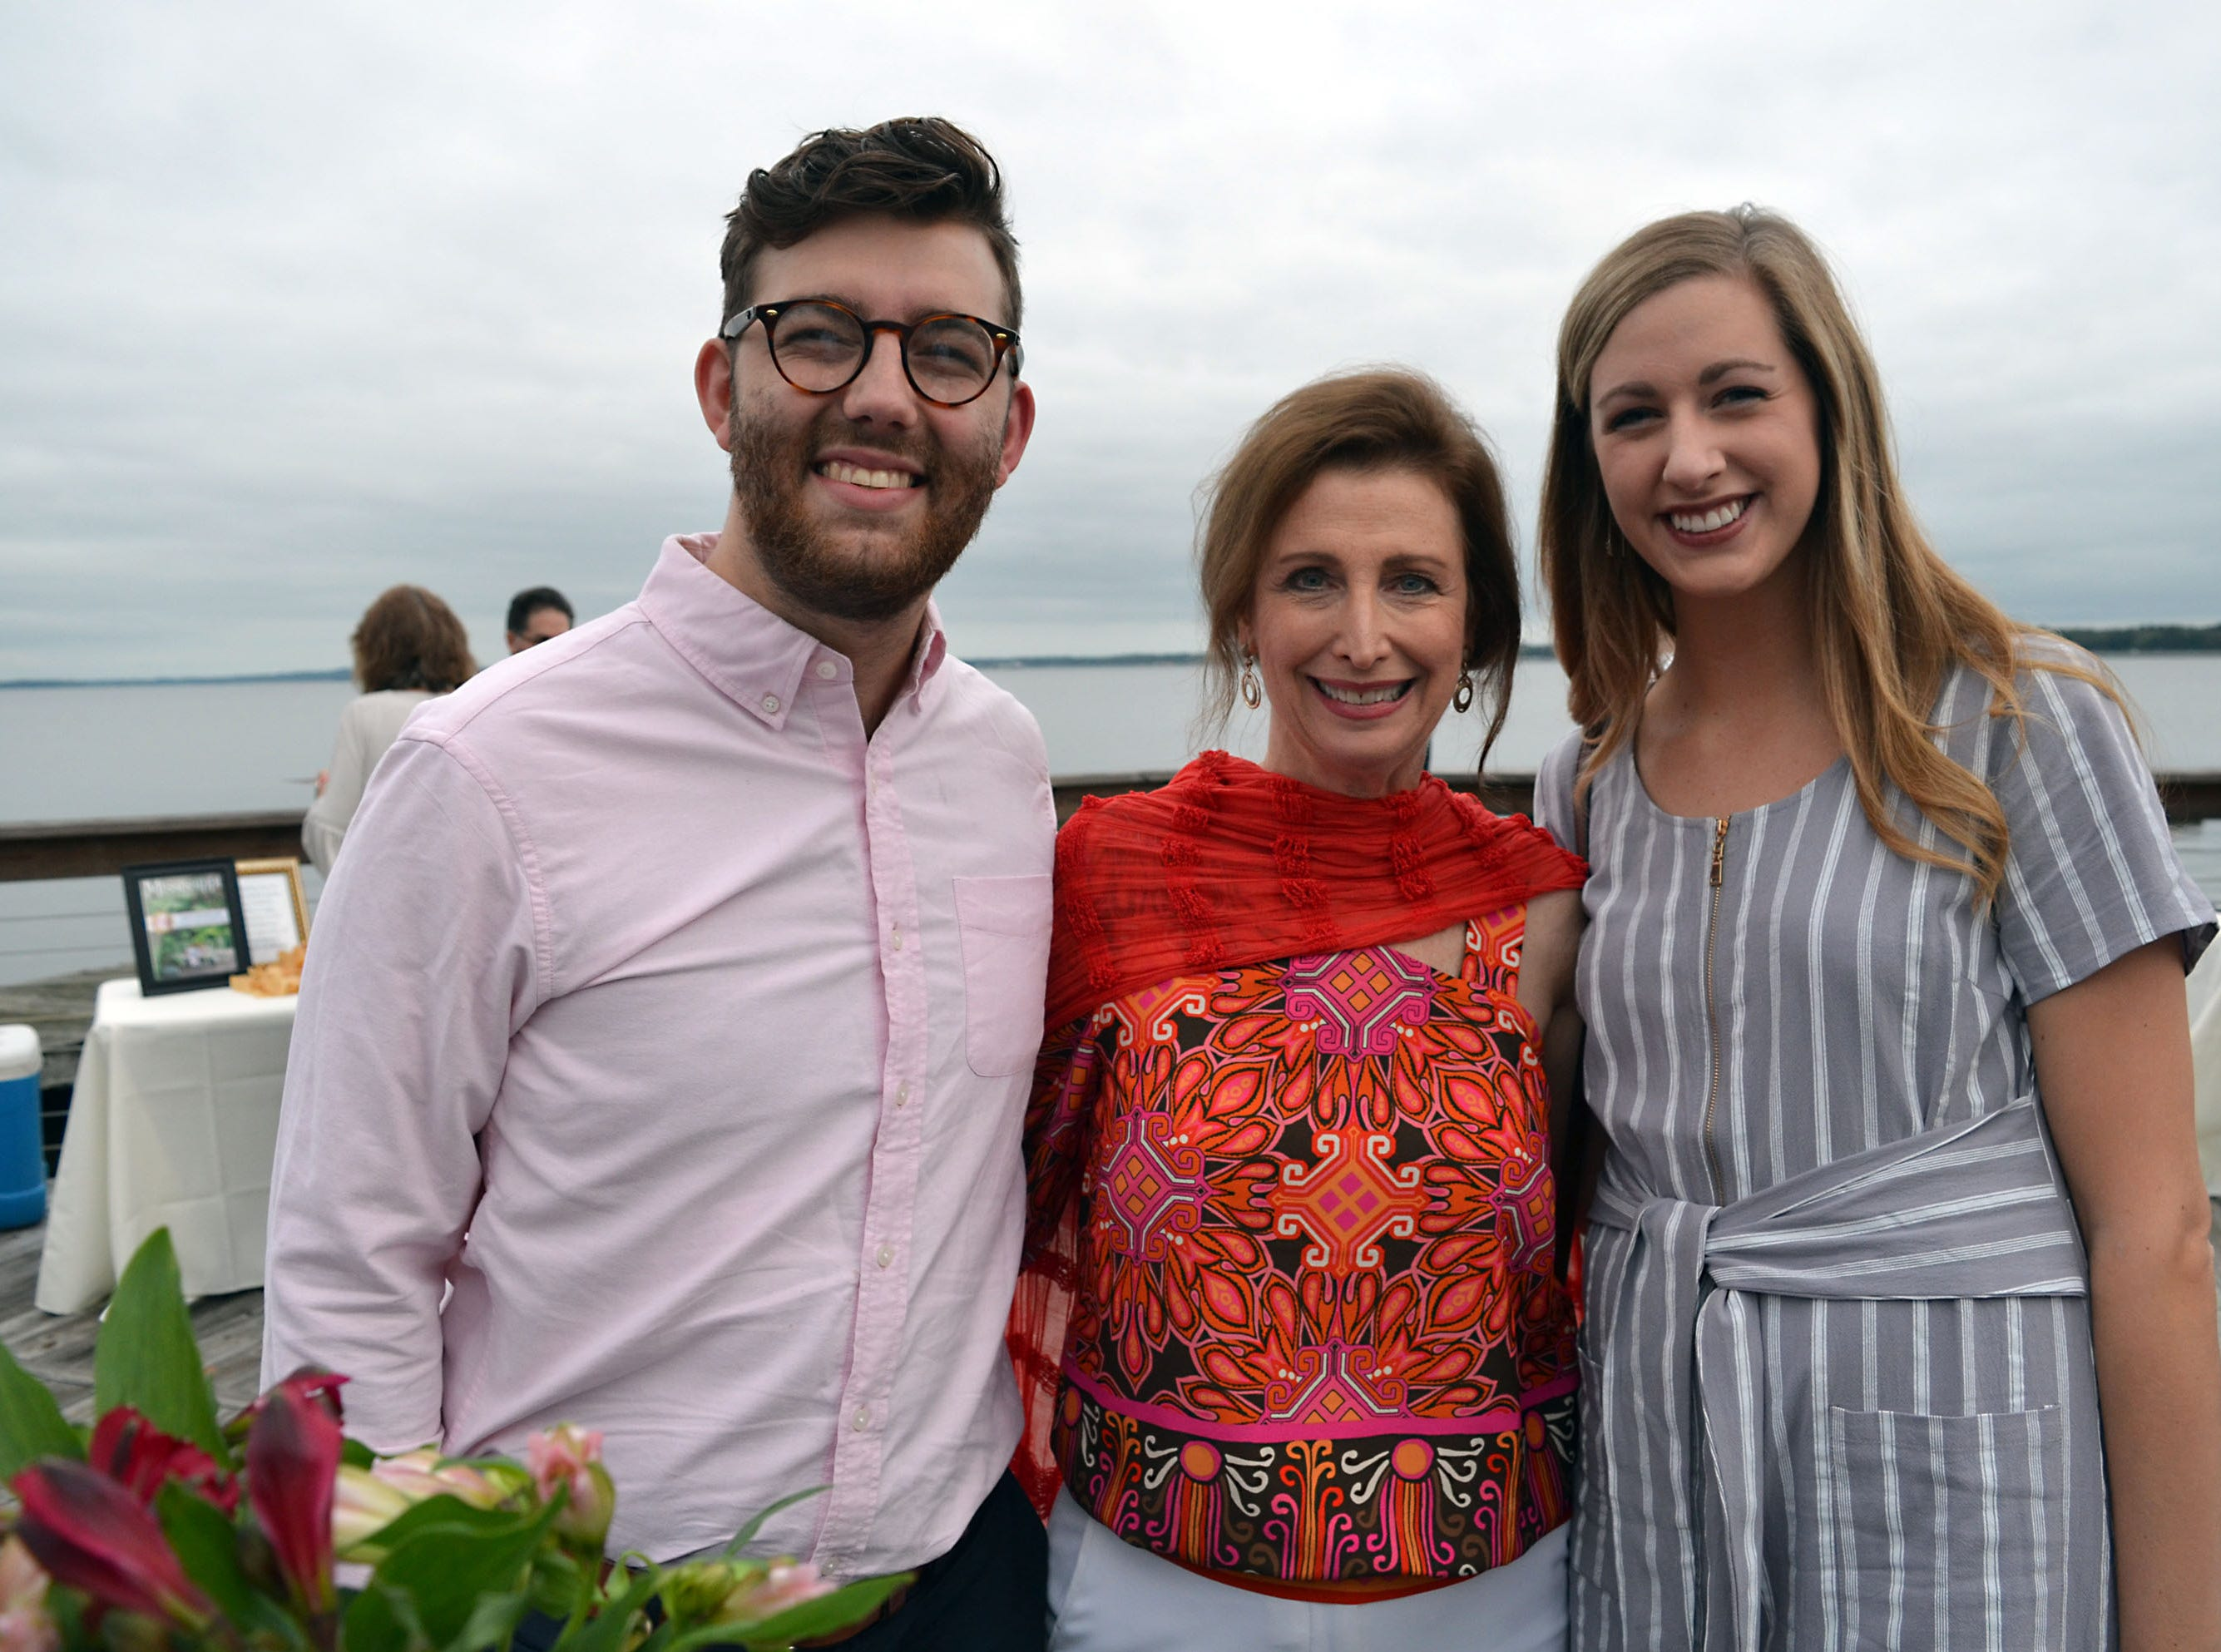 From left, Alex Coats of Jackson, Chris Chapman, of Ridgeland, and Katie DeMetz, of Jackson, were among those that enjoyed the variety of desserts prepared by the South's A-list pastry chefs.